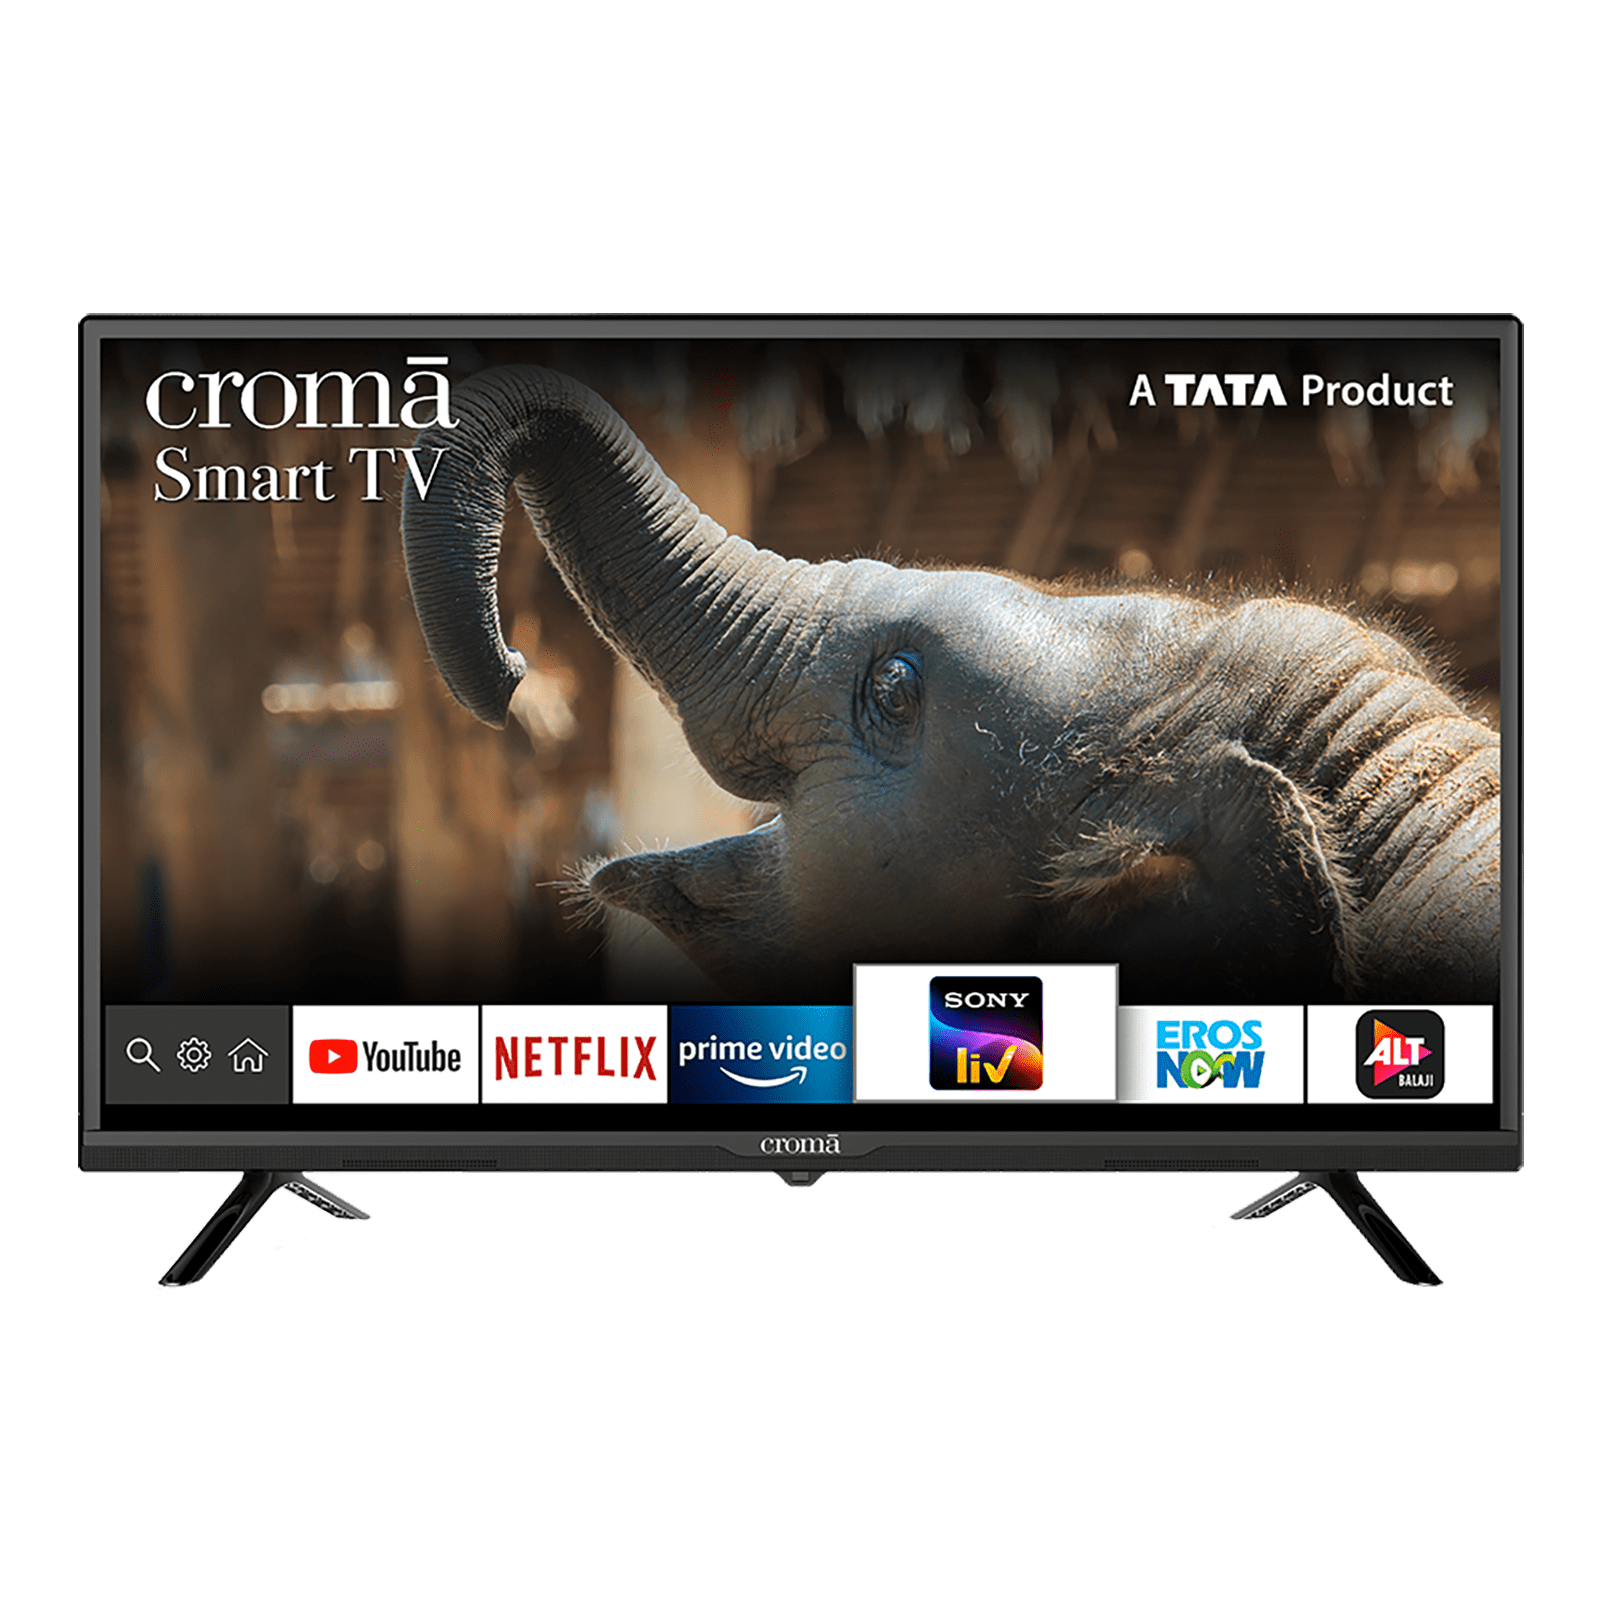 Croma 80cm (32 Inch) HD Ready LED Android Smart TV (3 Years Warranty, Screen Mirroring, CREL7370, Black)